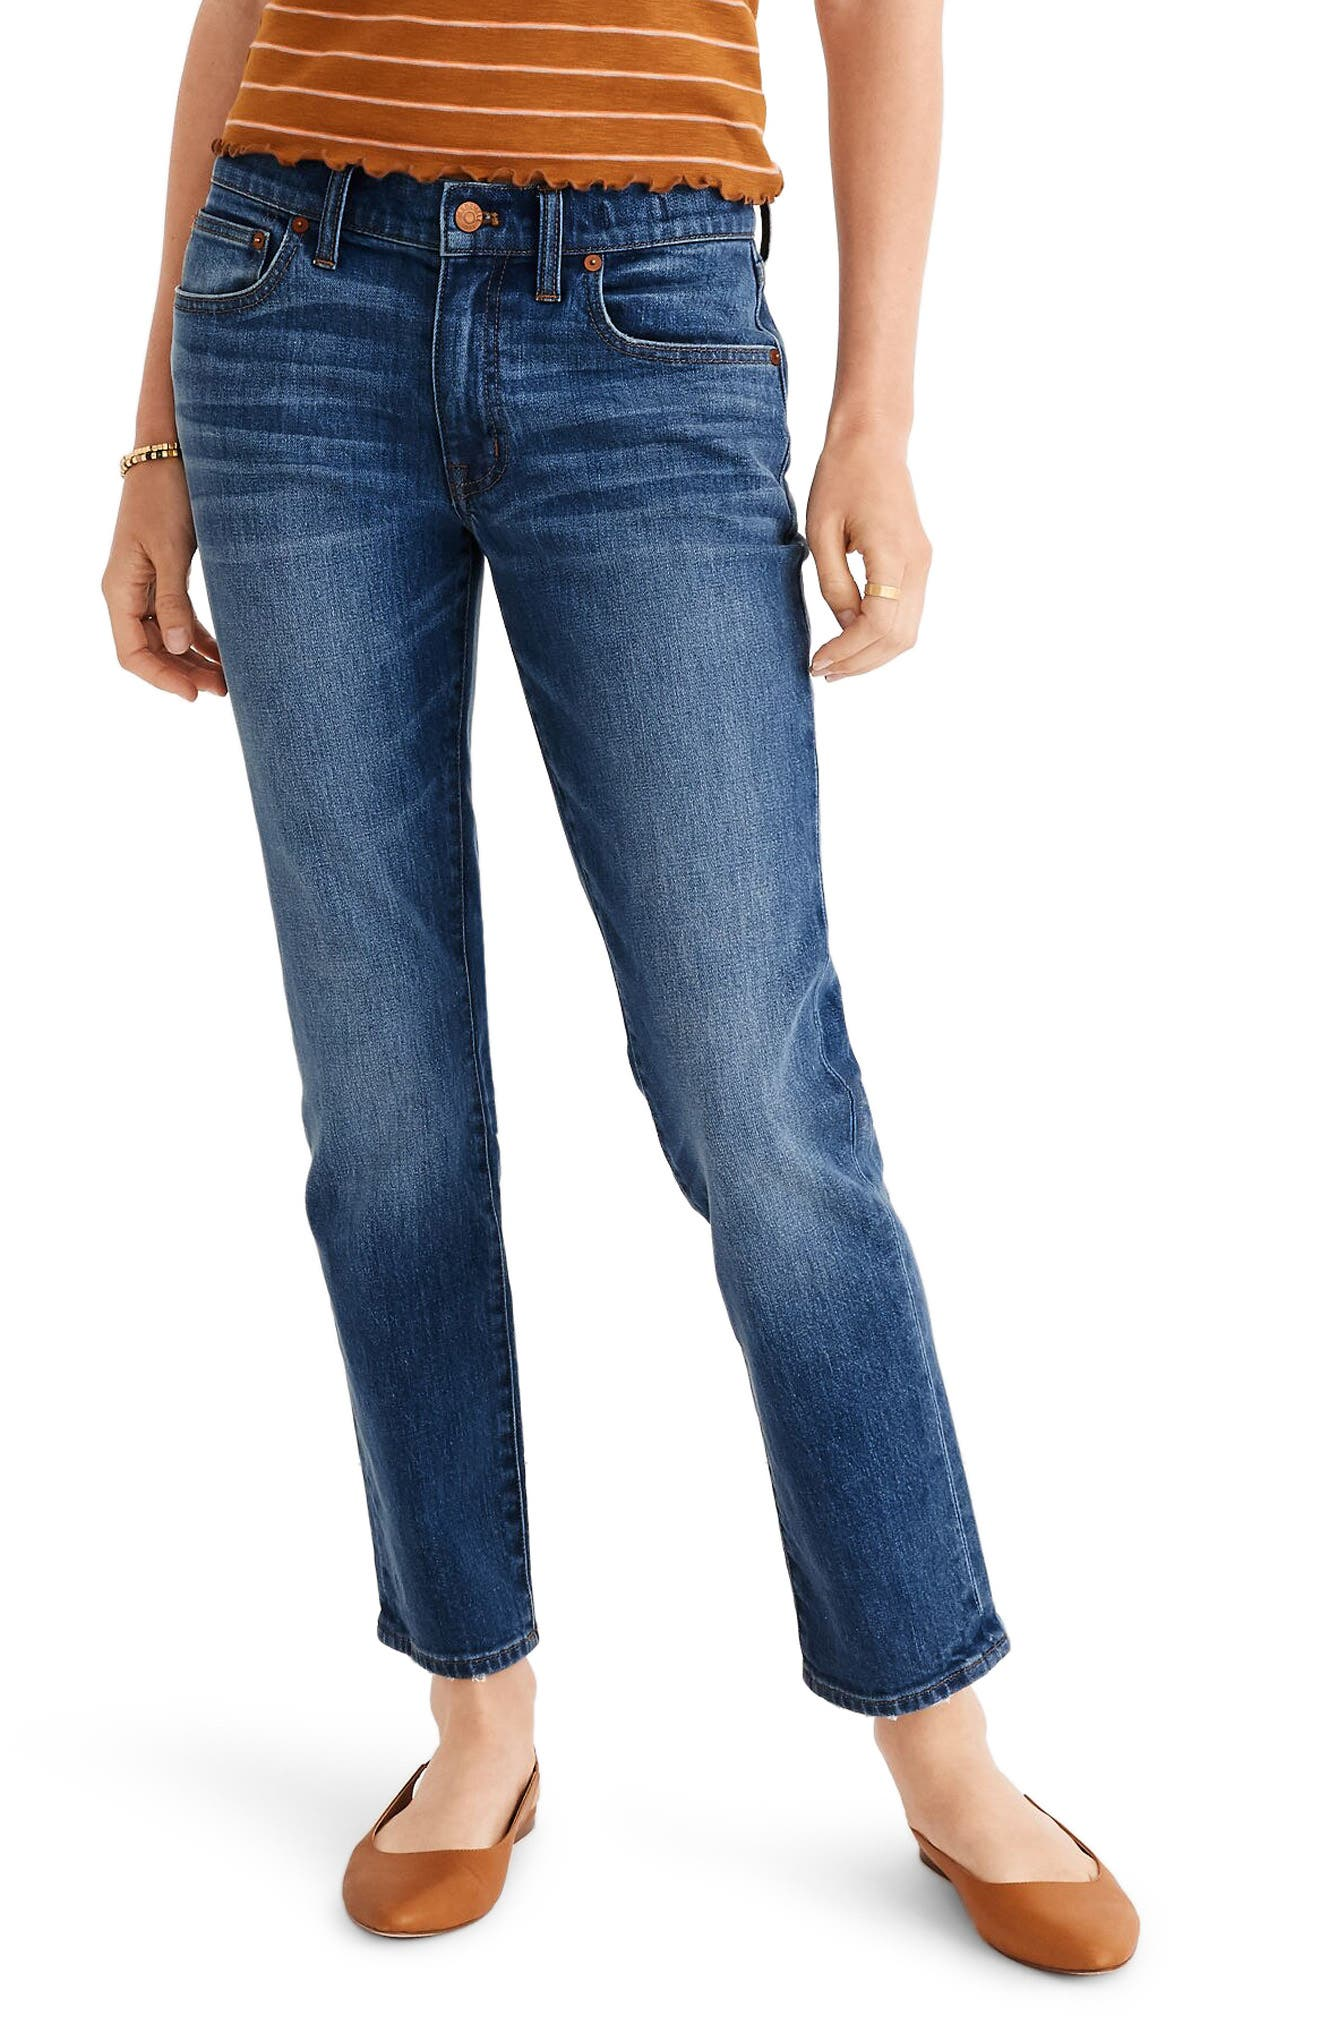 Madewell Boyfriend Jeans for Women | Nordstrom